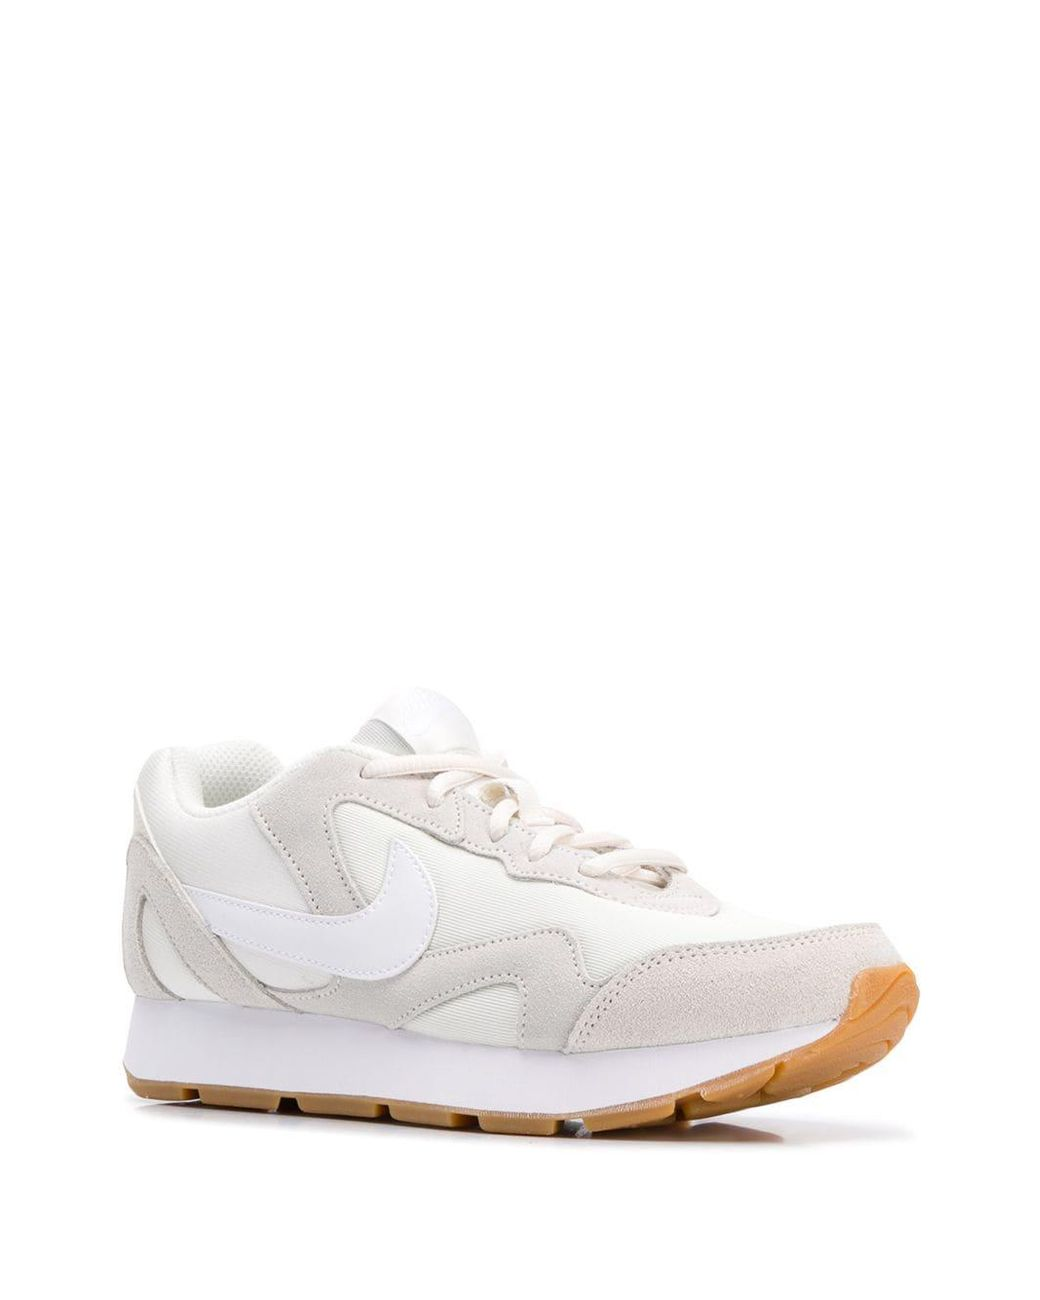 Lyst - Nike Delfine Sneakers in White